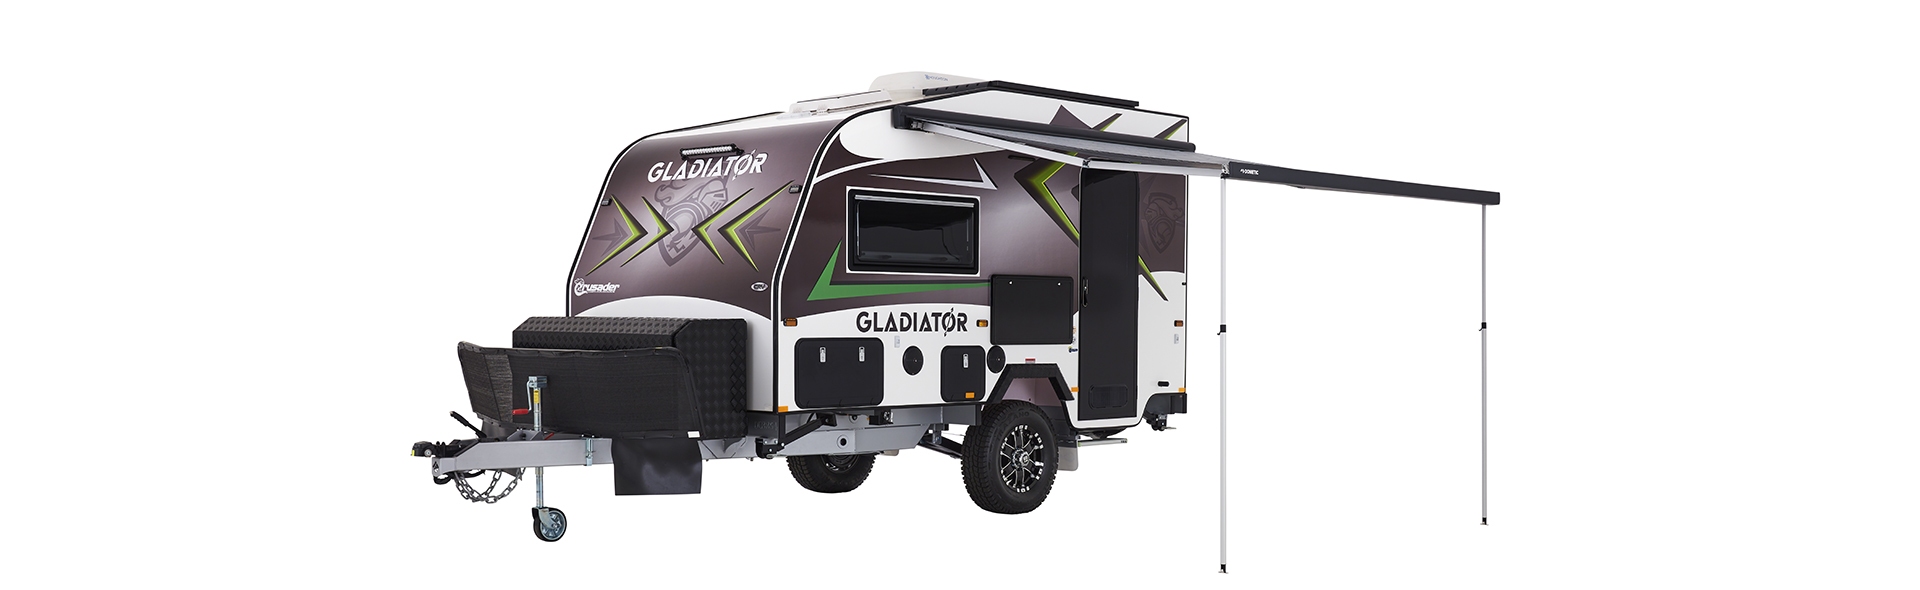 Enjoy the great outdoors under the Gladiator's 3.5 metre wind out awning.